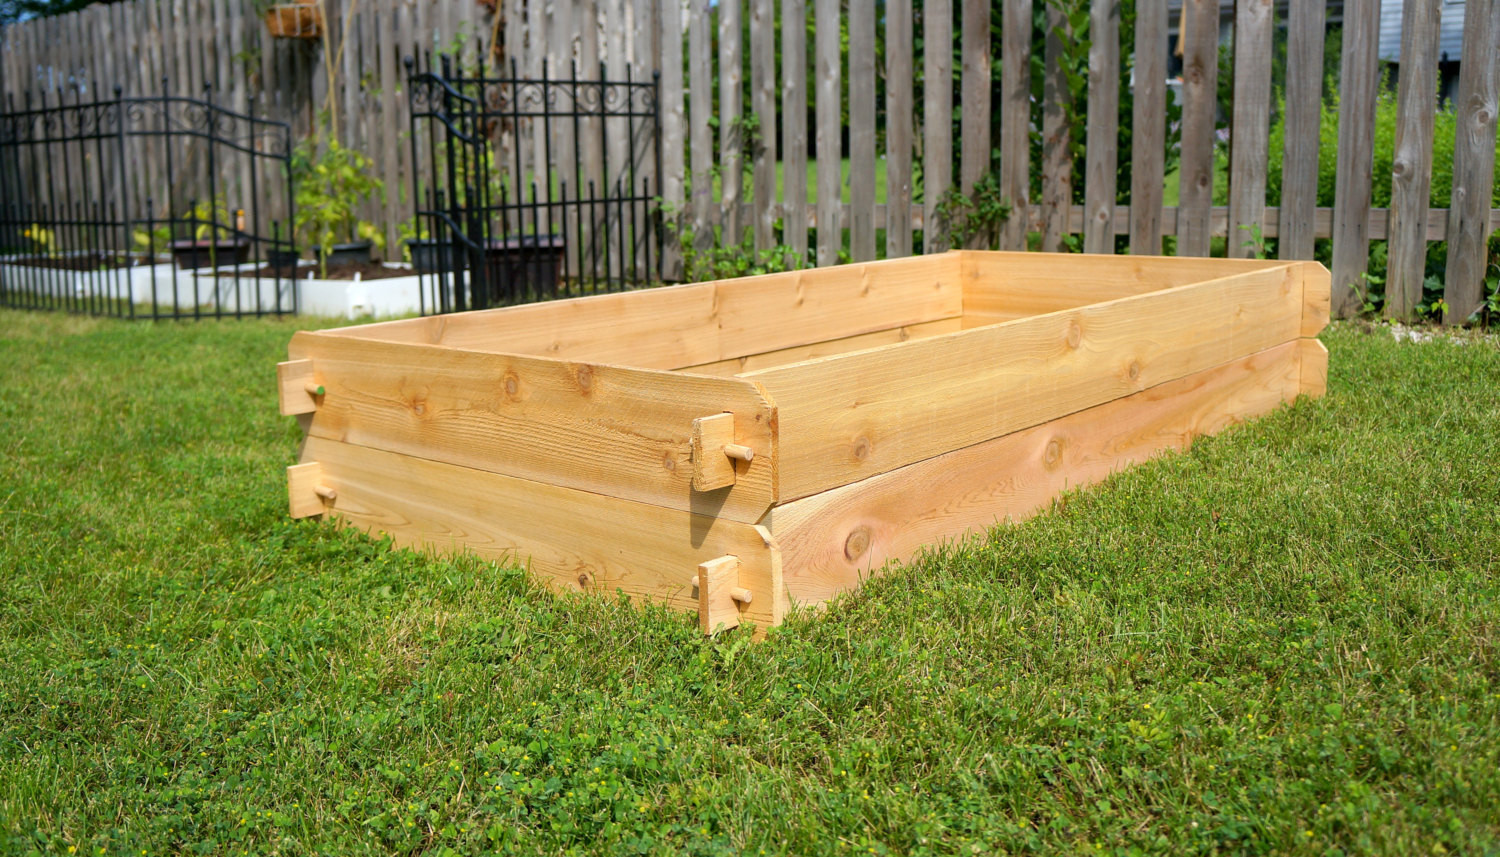 Best ideas about Raised Garden Planters . Save or Pin Raised Garden Planter Bed Flower Box Cedar Ve able Now.